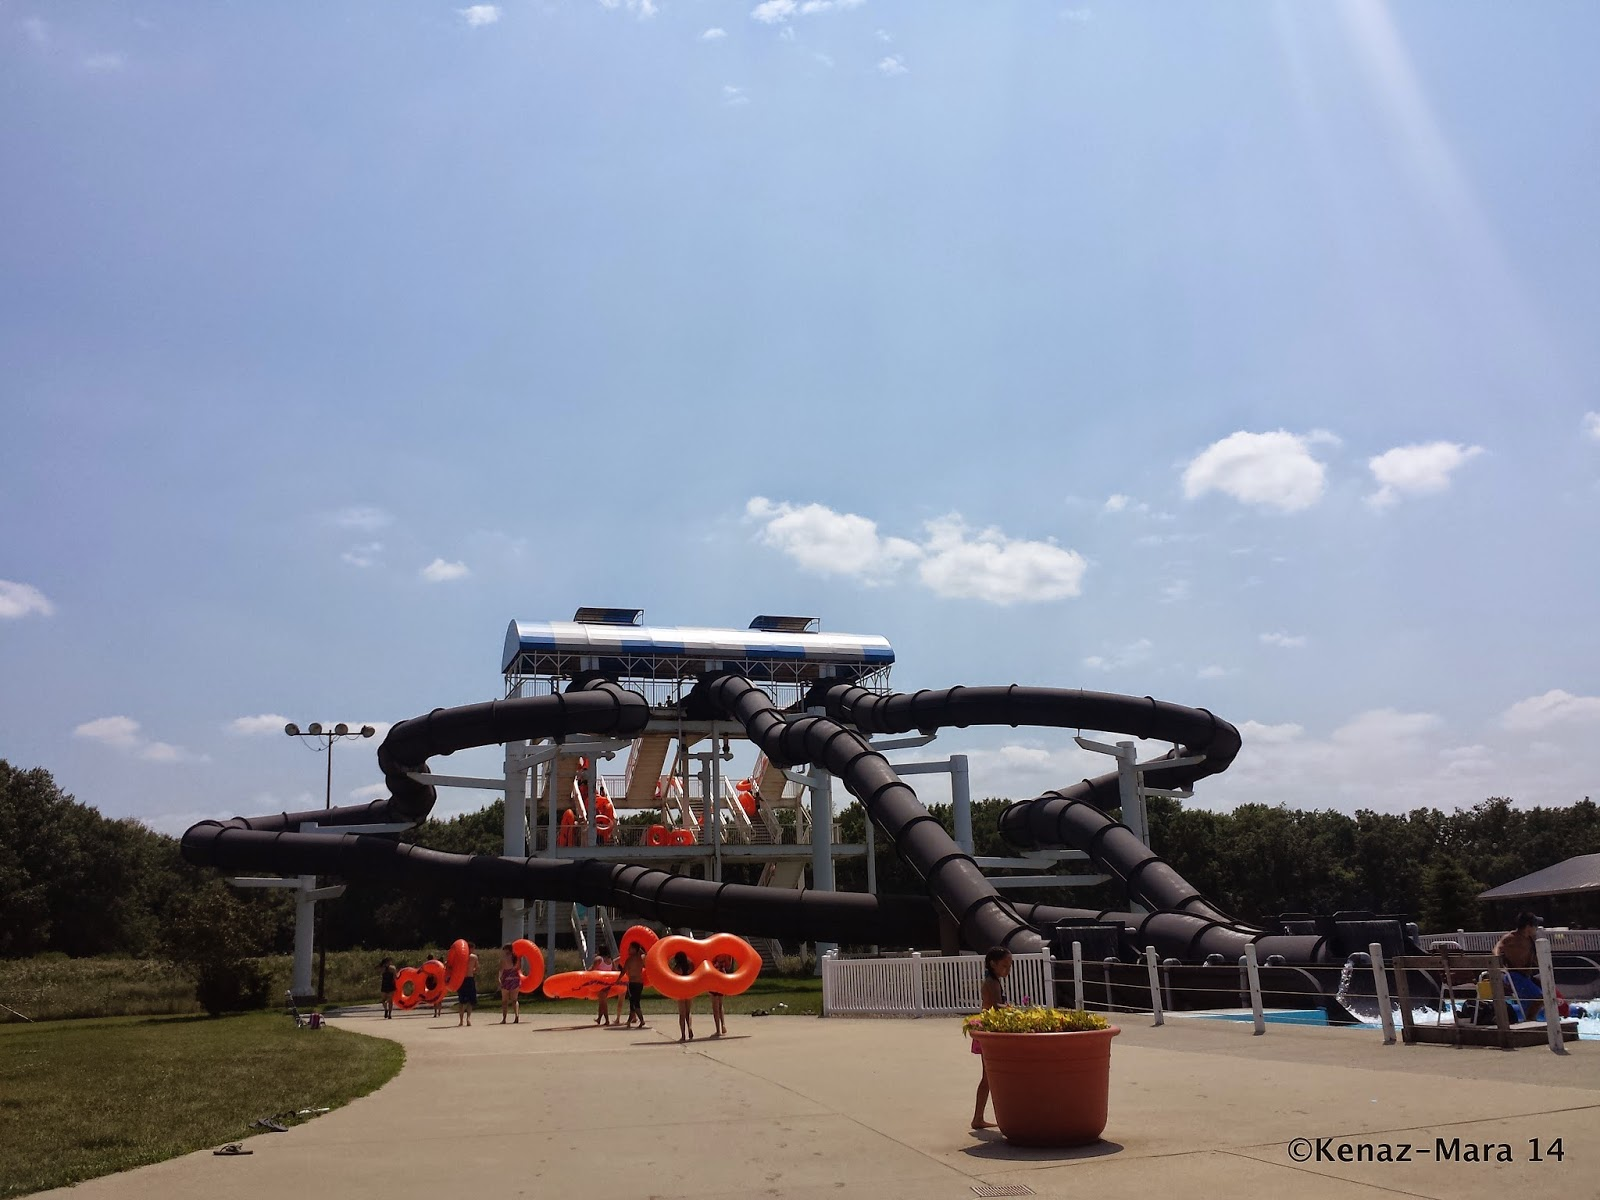 Chiil Mama August 2014 Voucher The Jungle Waterboom Weekday Disclosure Thanks To Deep River Waterpark For Providing Us With Tickets Food Vouchers Review Purposes And Our Giveaway